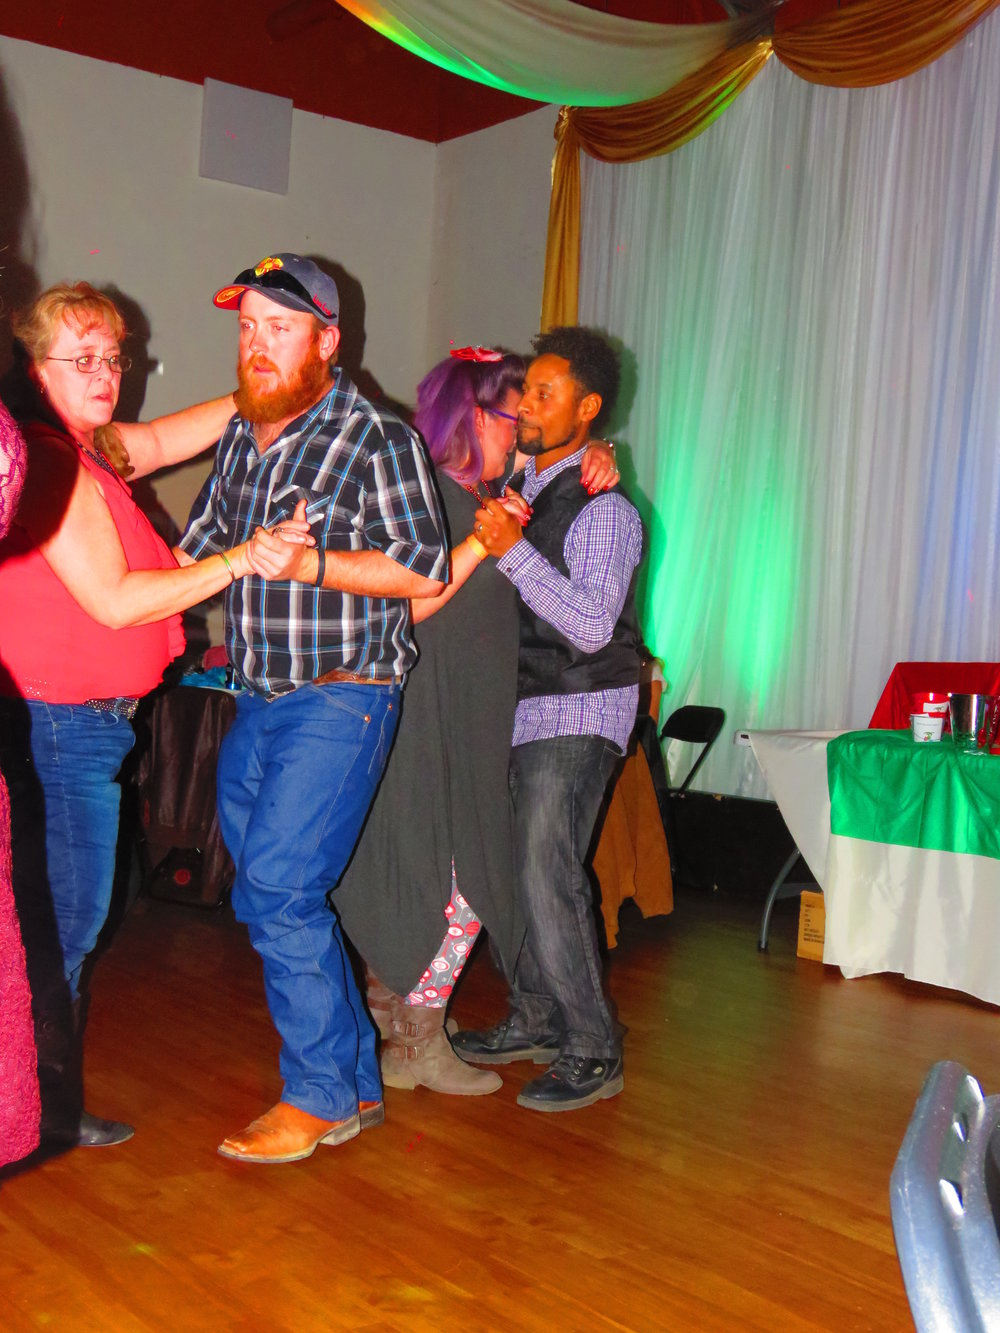 EZRA, MOM, STACEY & BRIAN DANCING.JPG